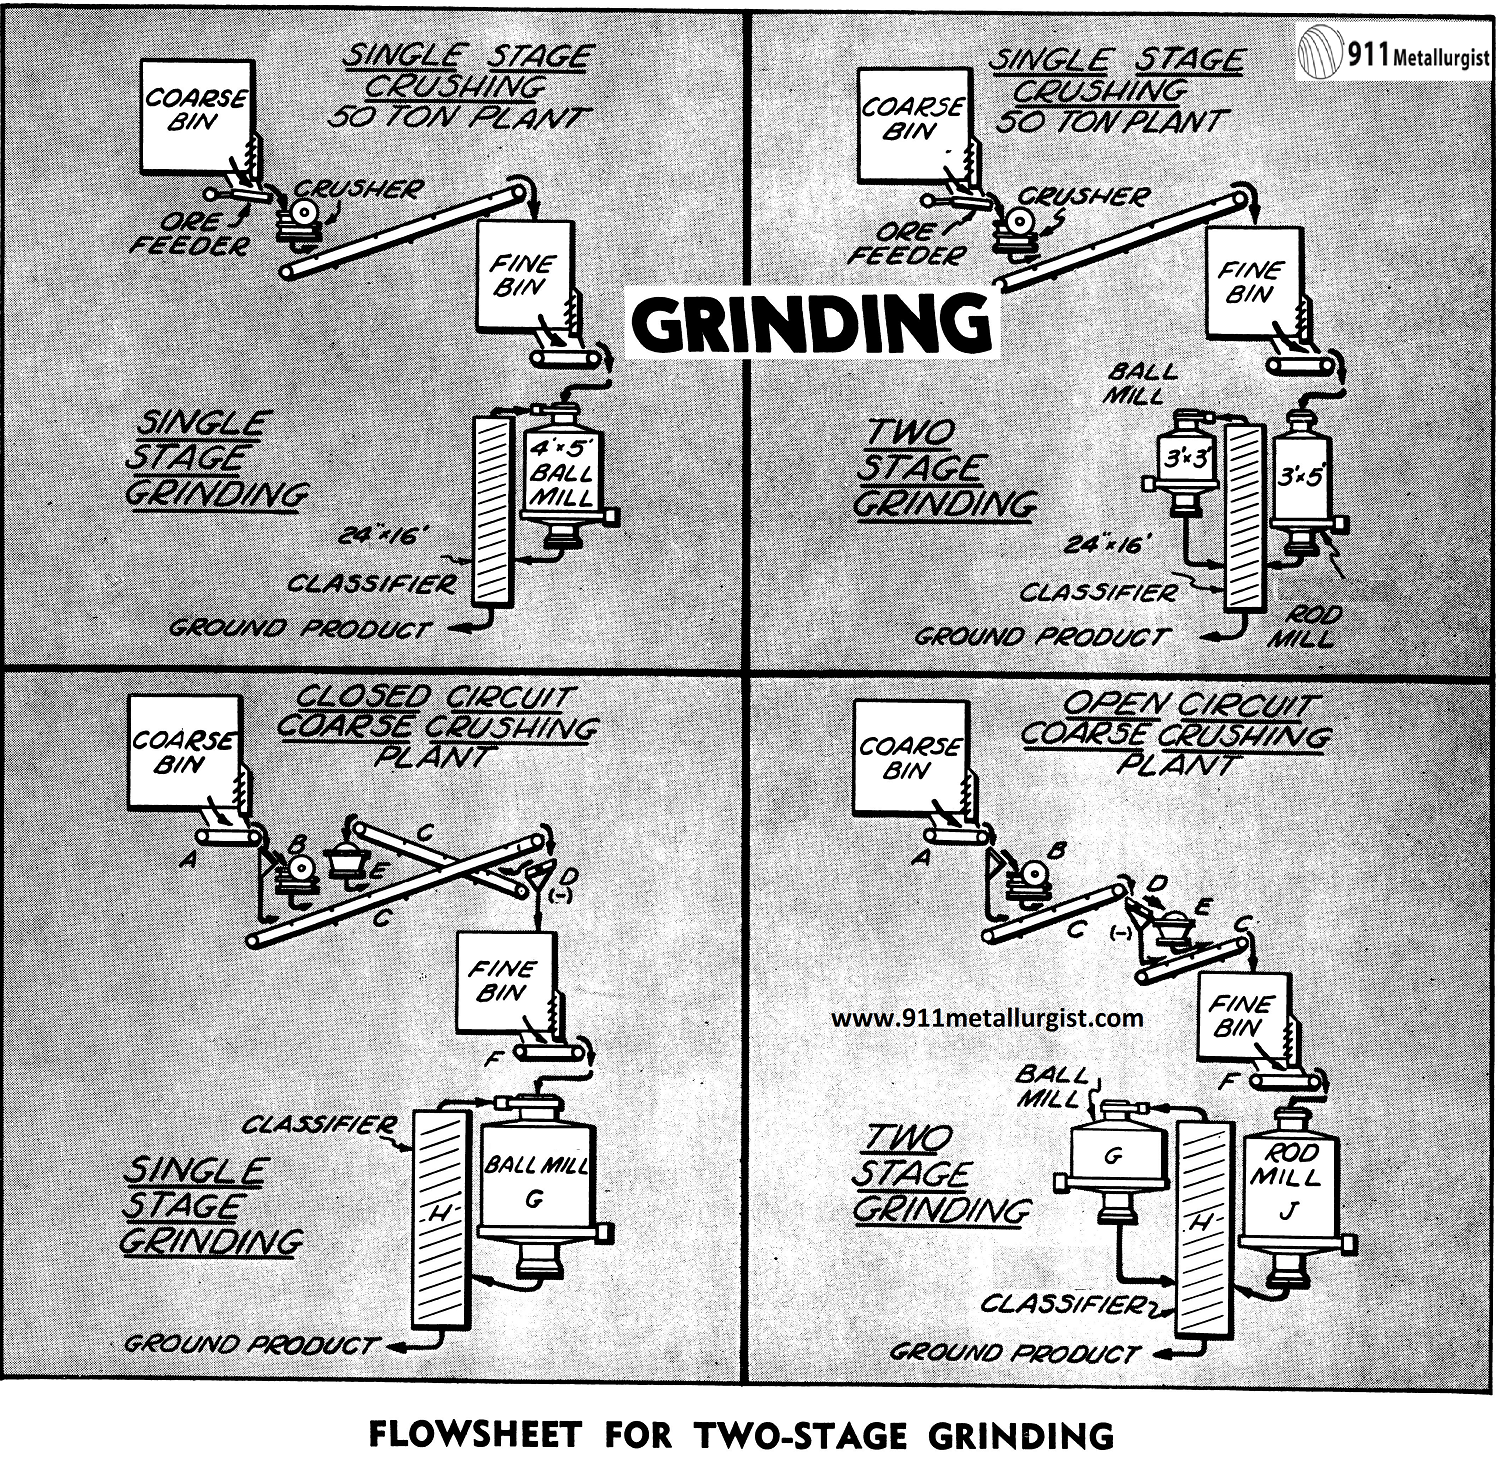 Flowsheet for Two-Stage Grinding